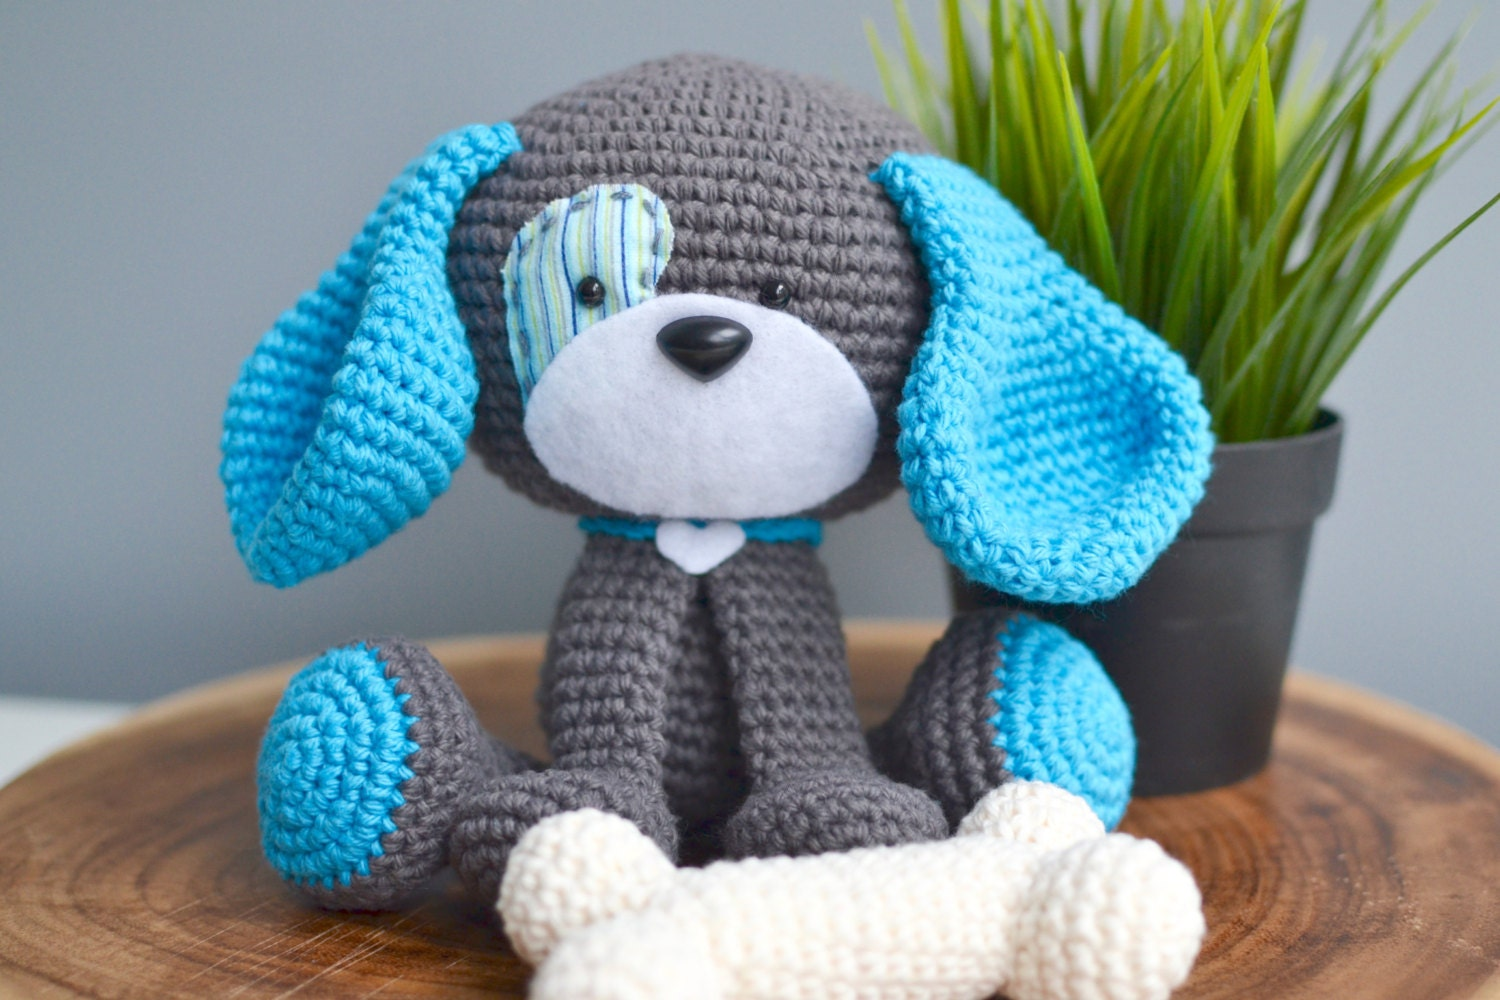 Free Pattern For Amigurumi Dog : Cute Dog Crochet Pattern. Domino The Dog Amigurumi Crochet